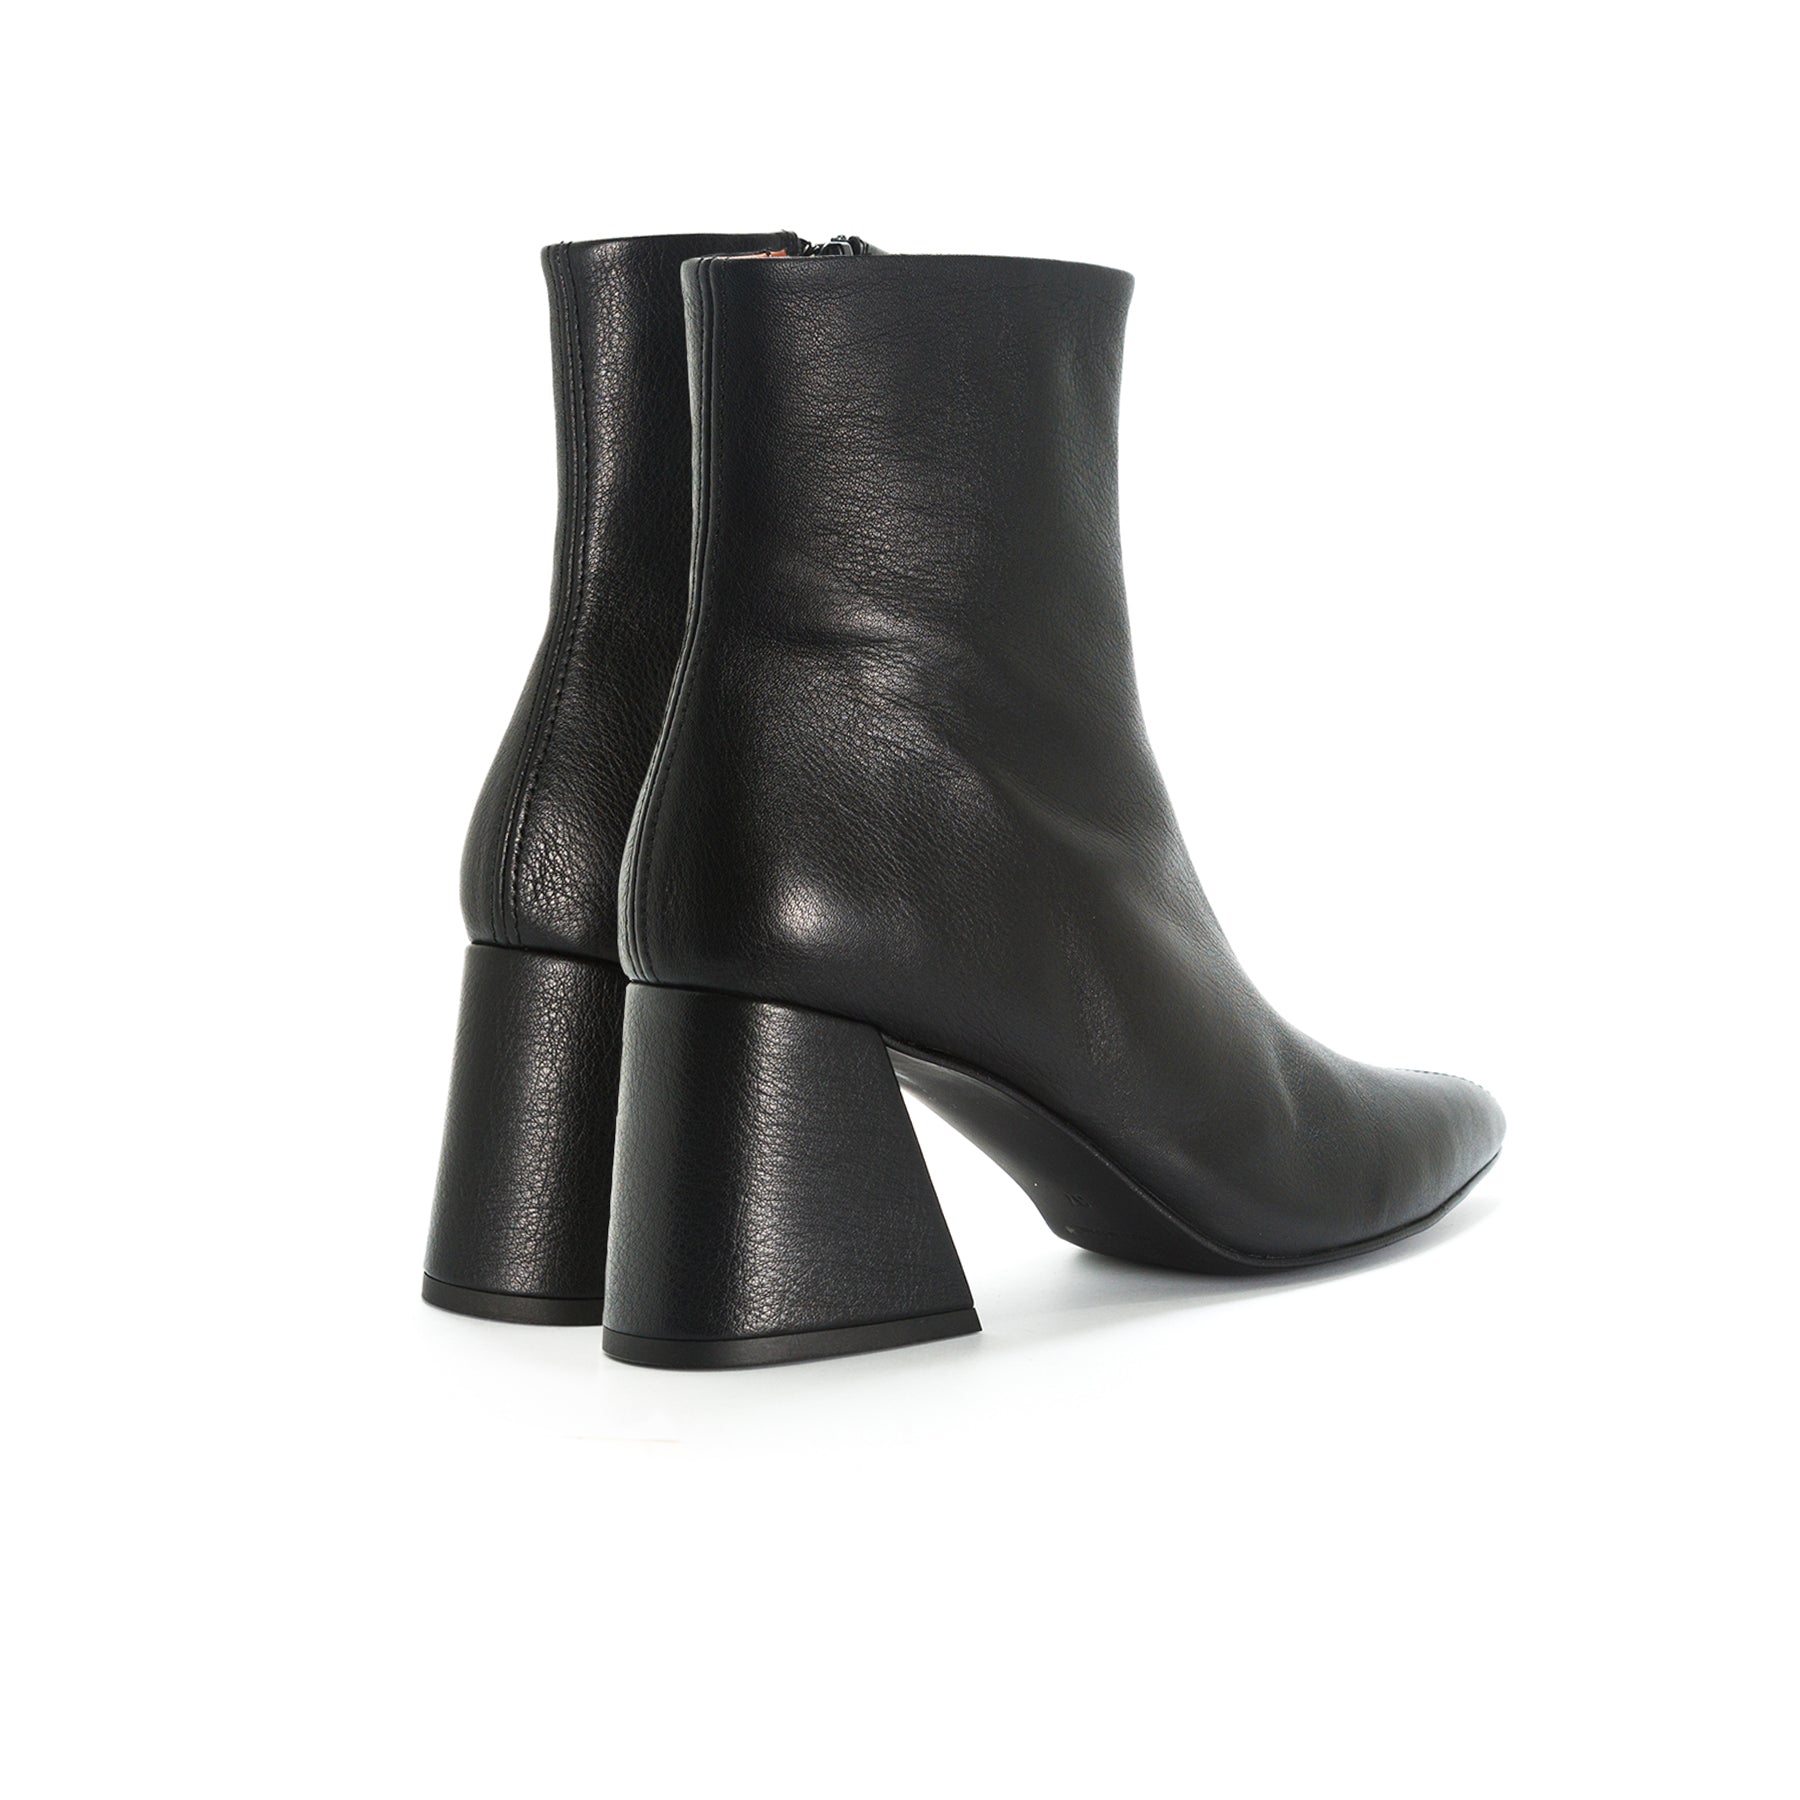 Antiga Black Leather Booties